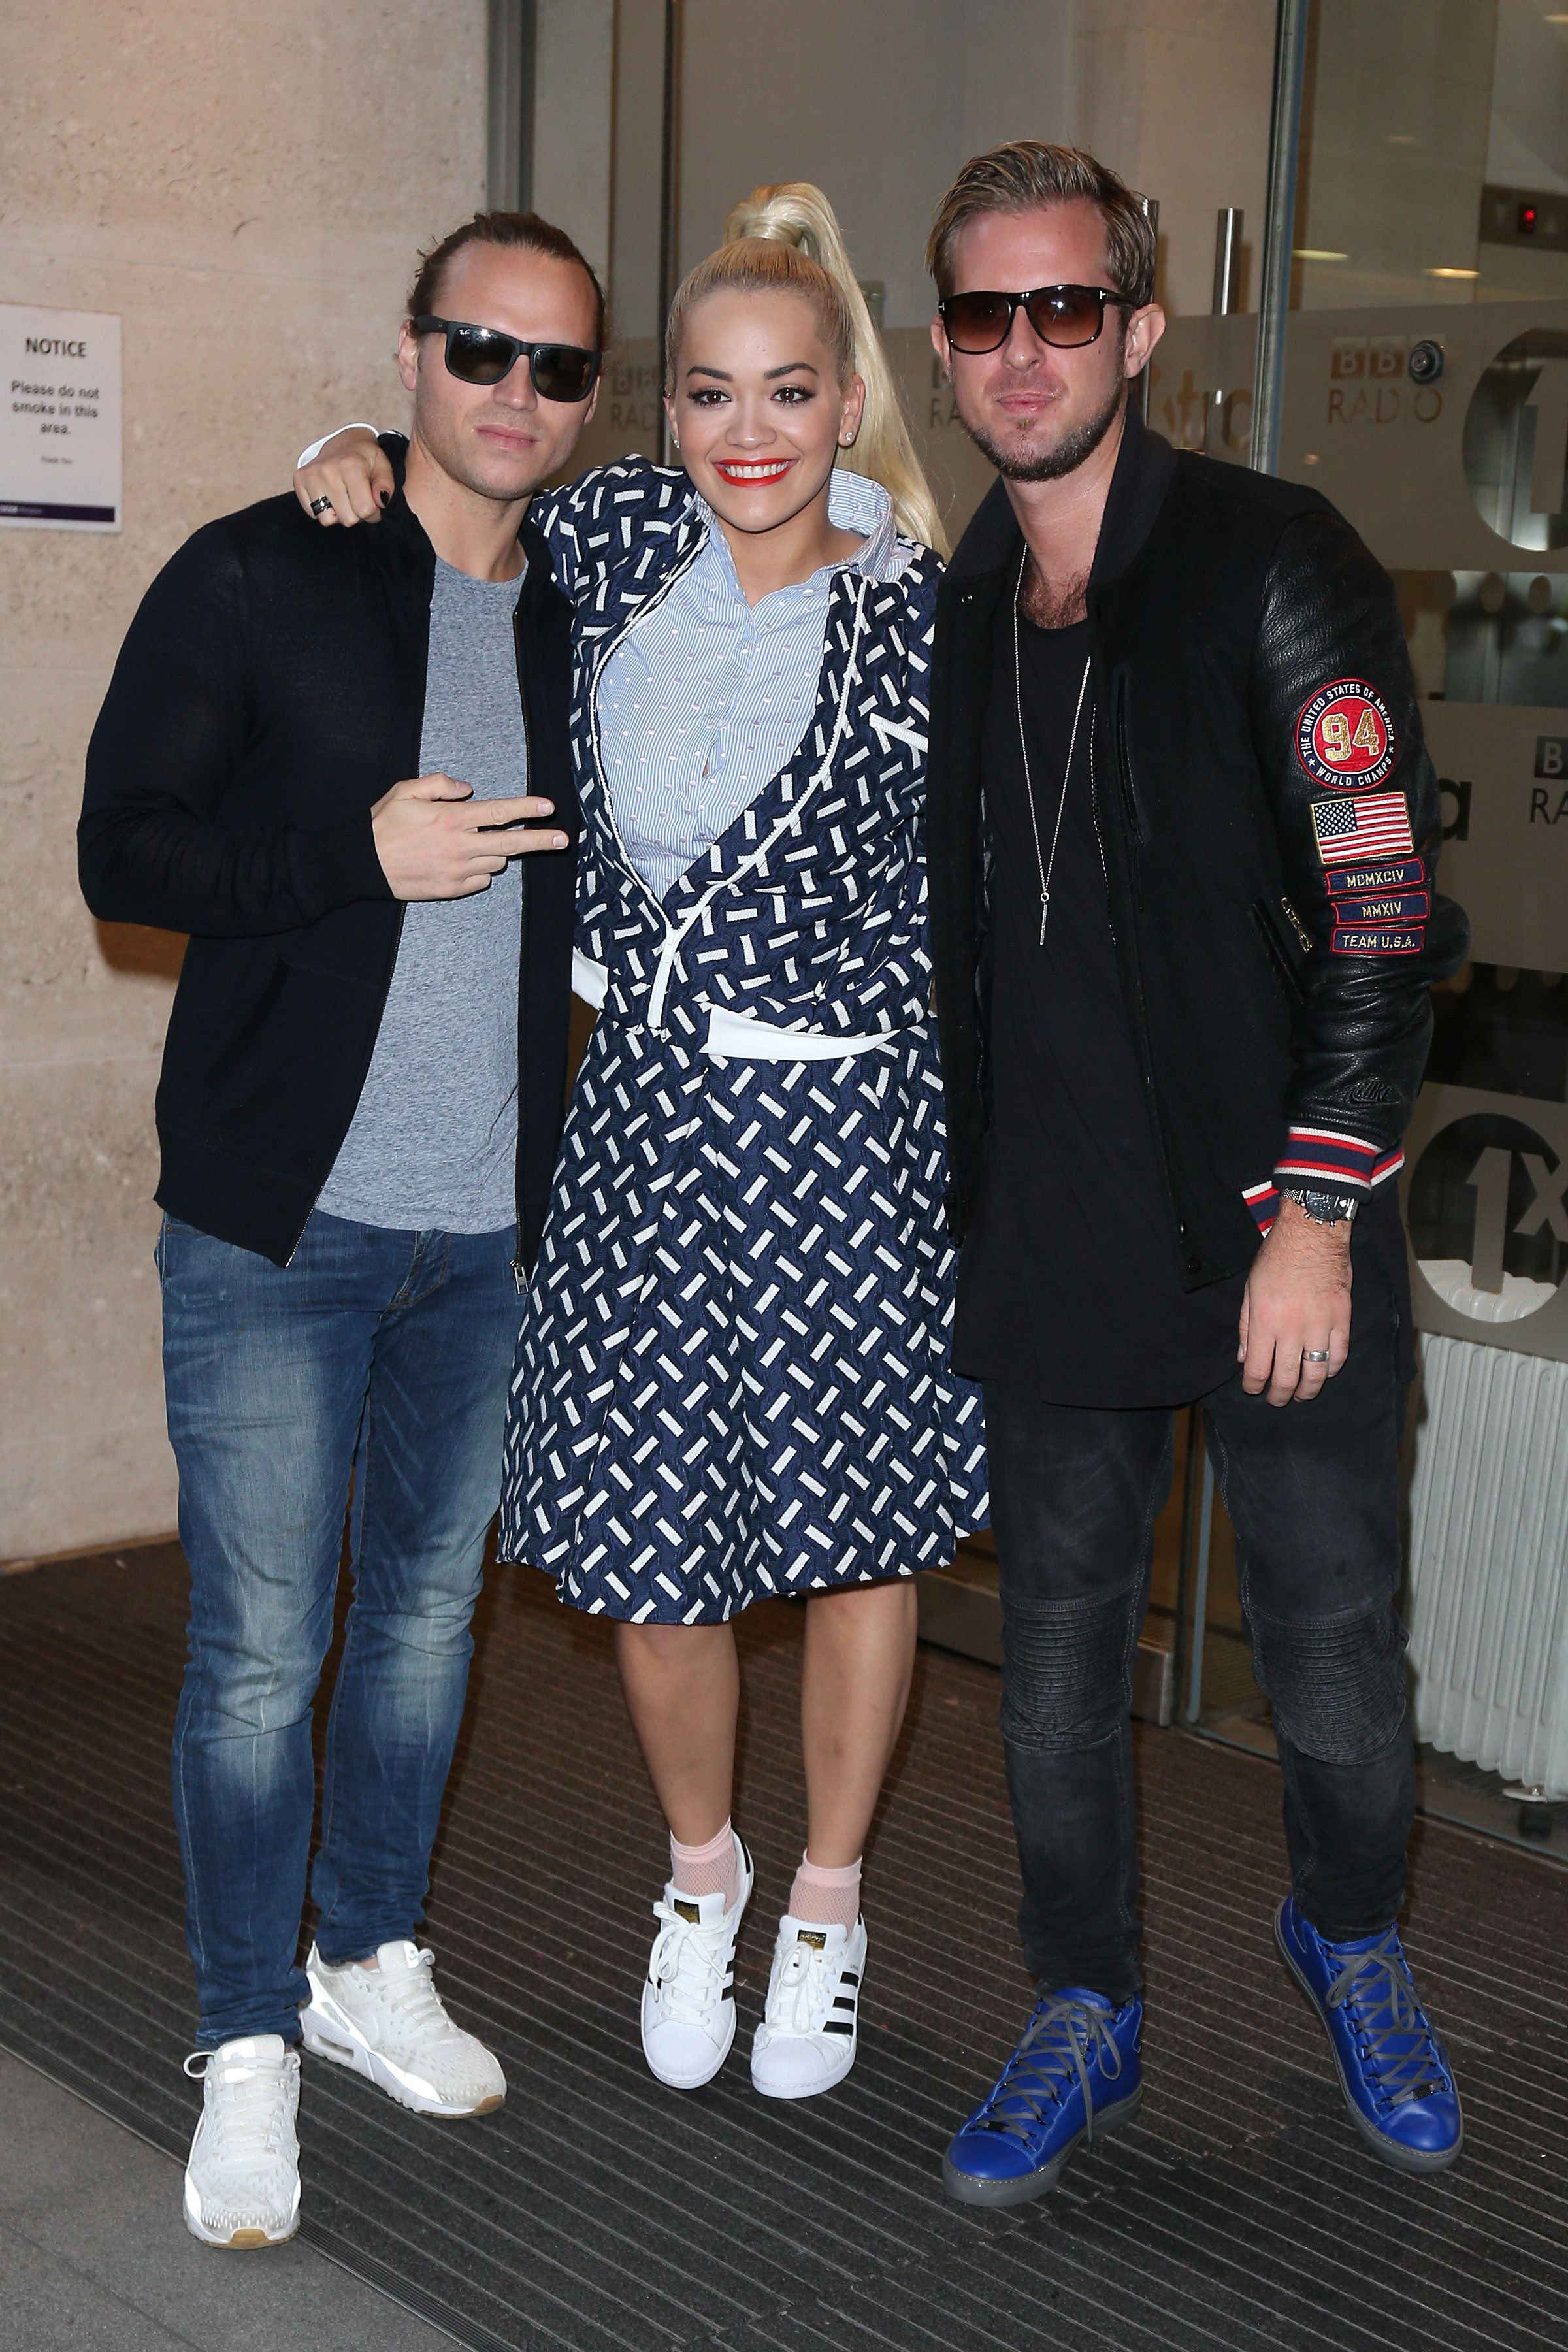 LONDON, ENGLAND - NOVEMBER 05:  Rita Ora with Joe Lenzie and Cameron Edwards from Sigma seen at BBC Radio One on November 5, 2015 in London, England.  (Photo by Neil P. Mockford/GC Images)